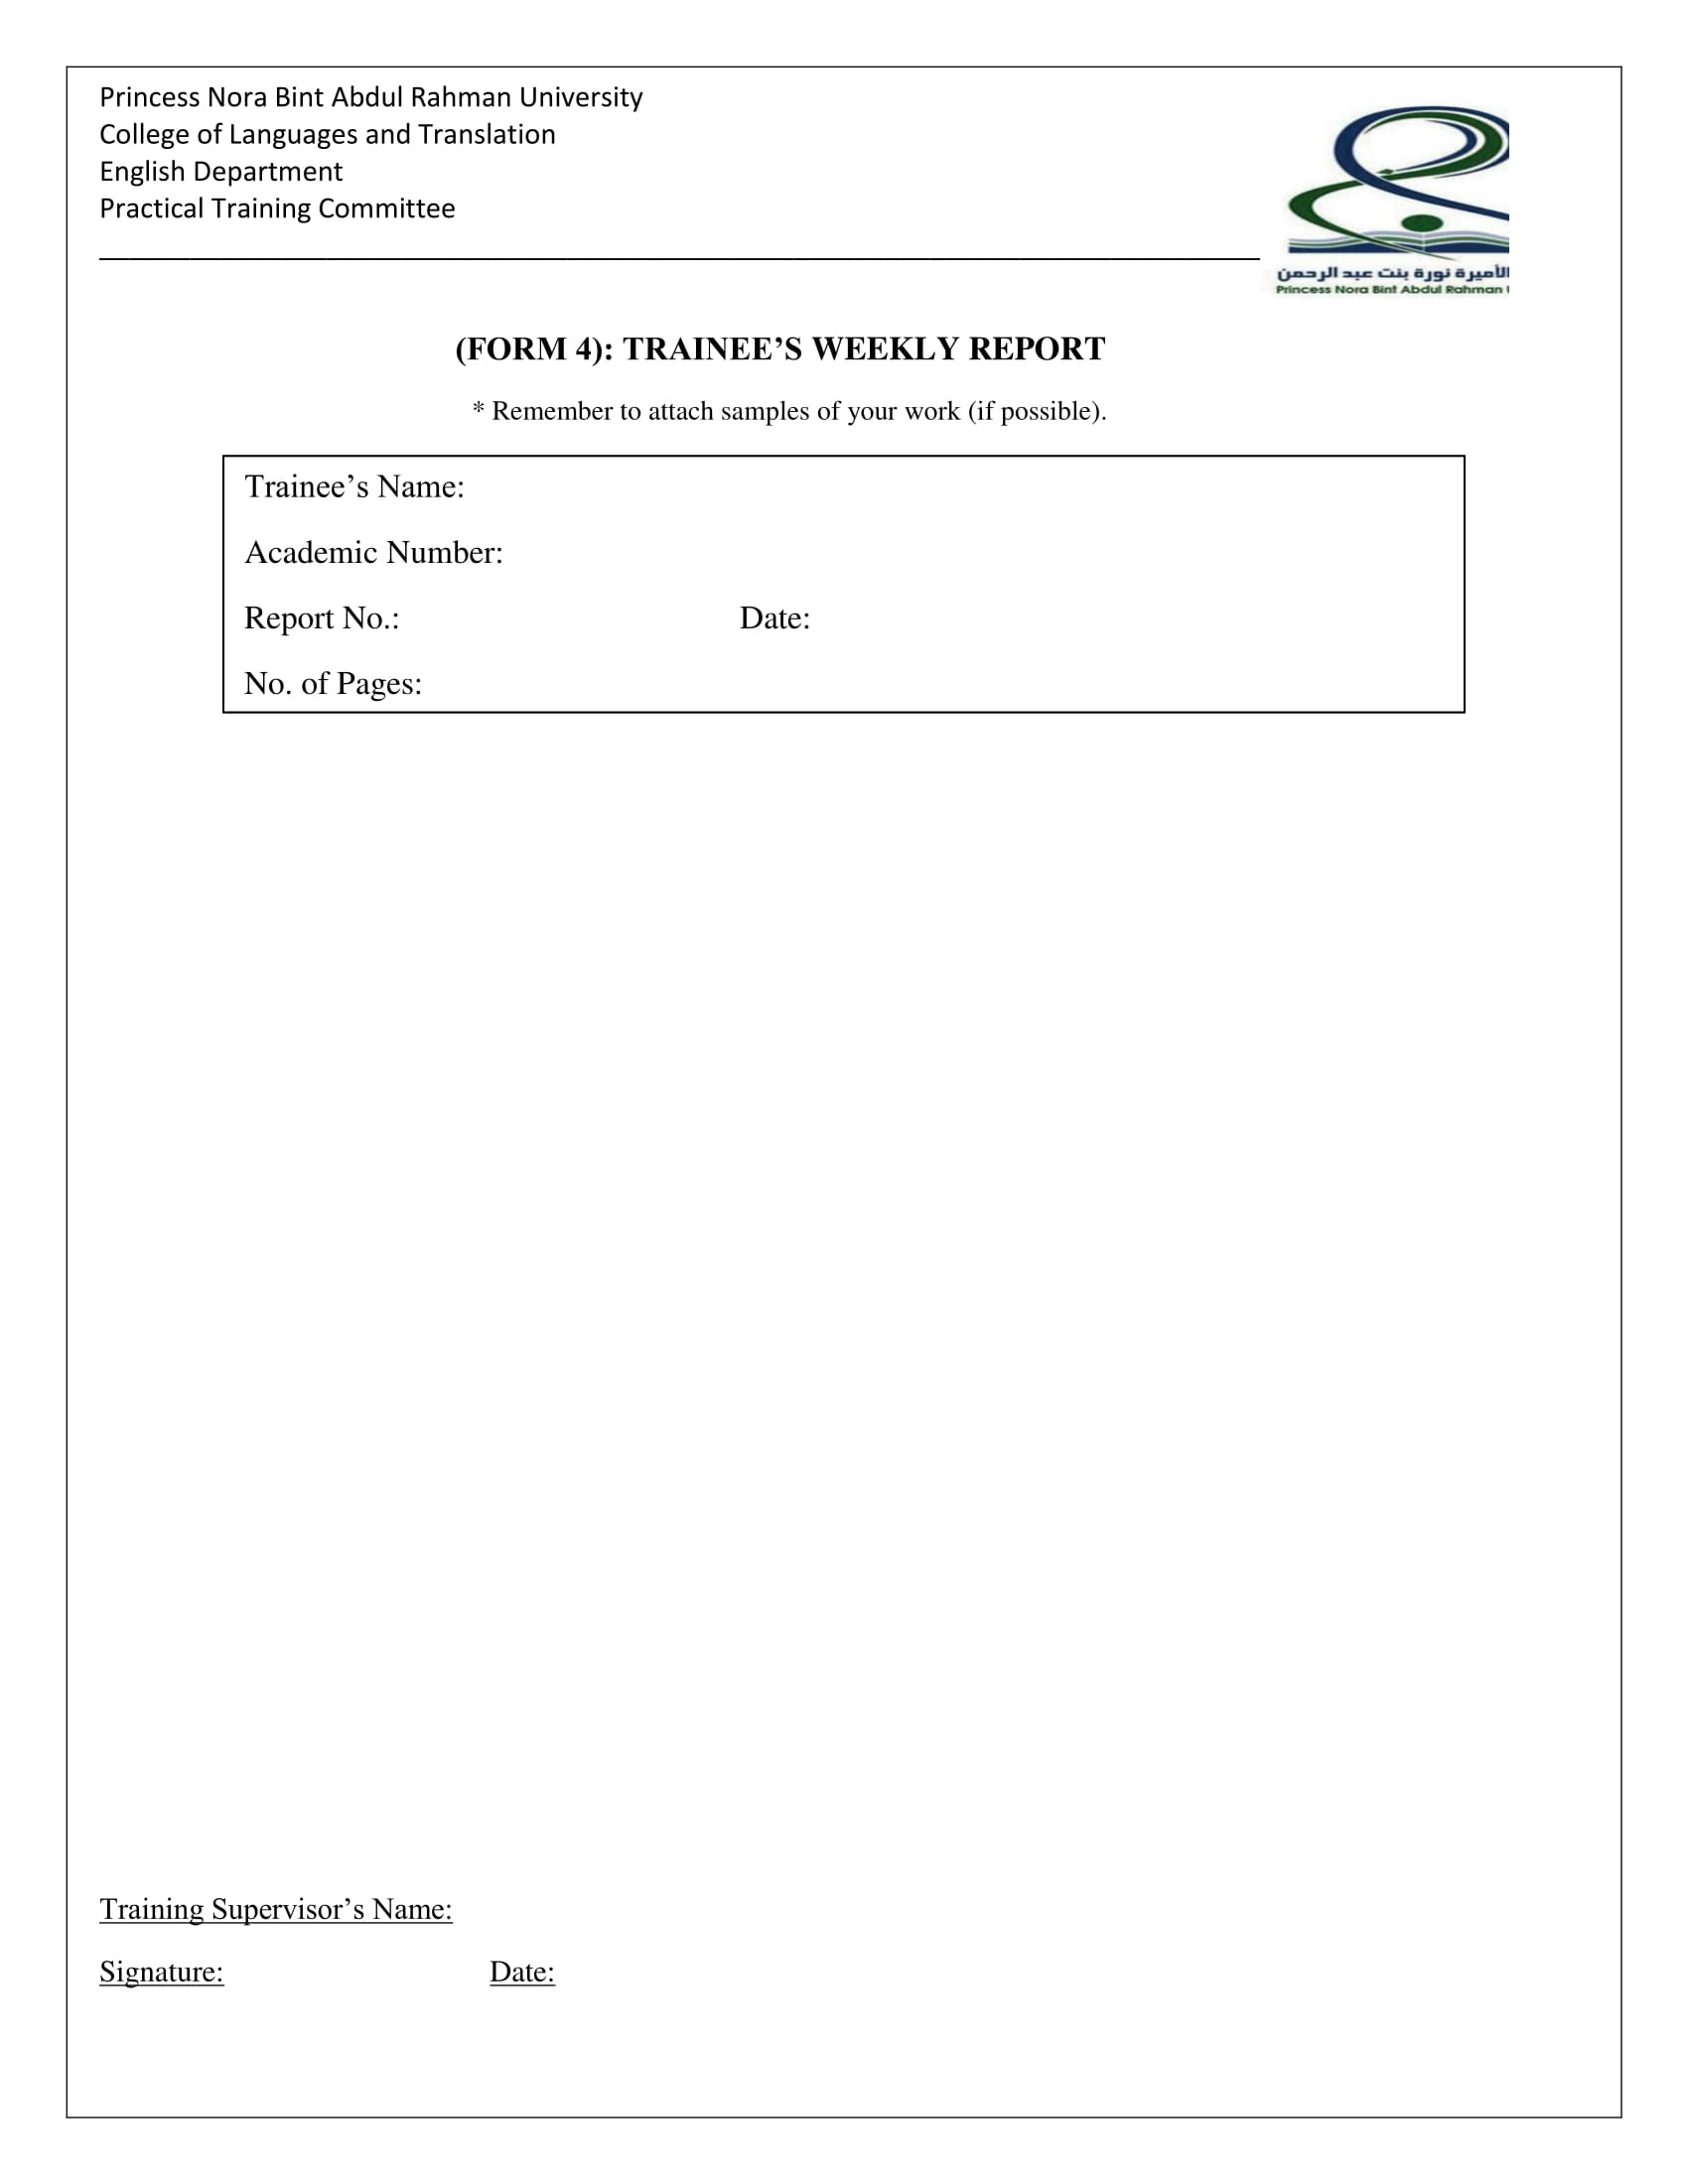 trainee's weekly report form 1